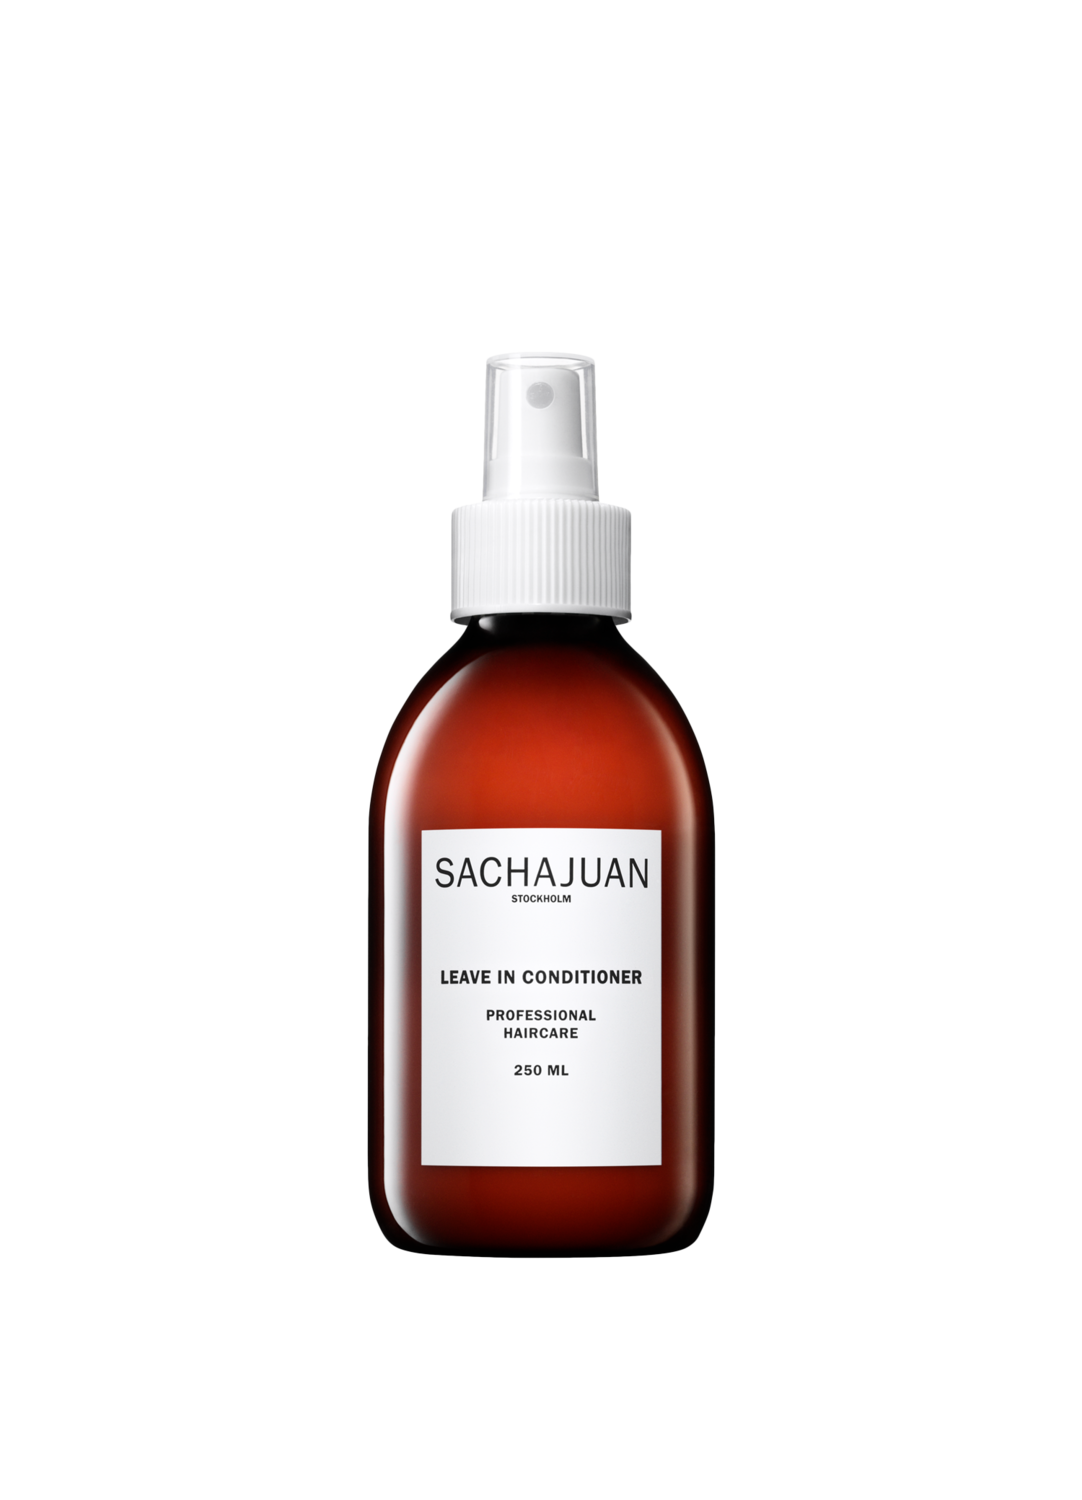 sachajuan | leave in conditioner